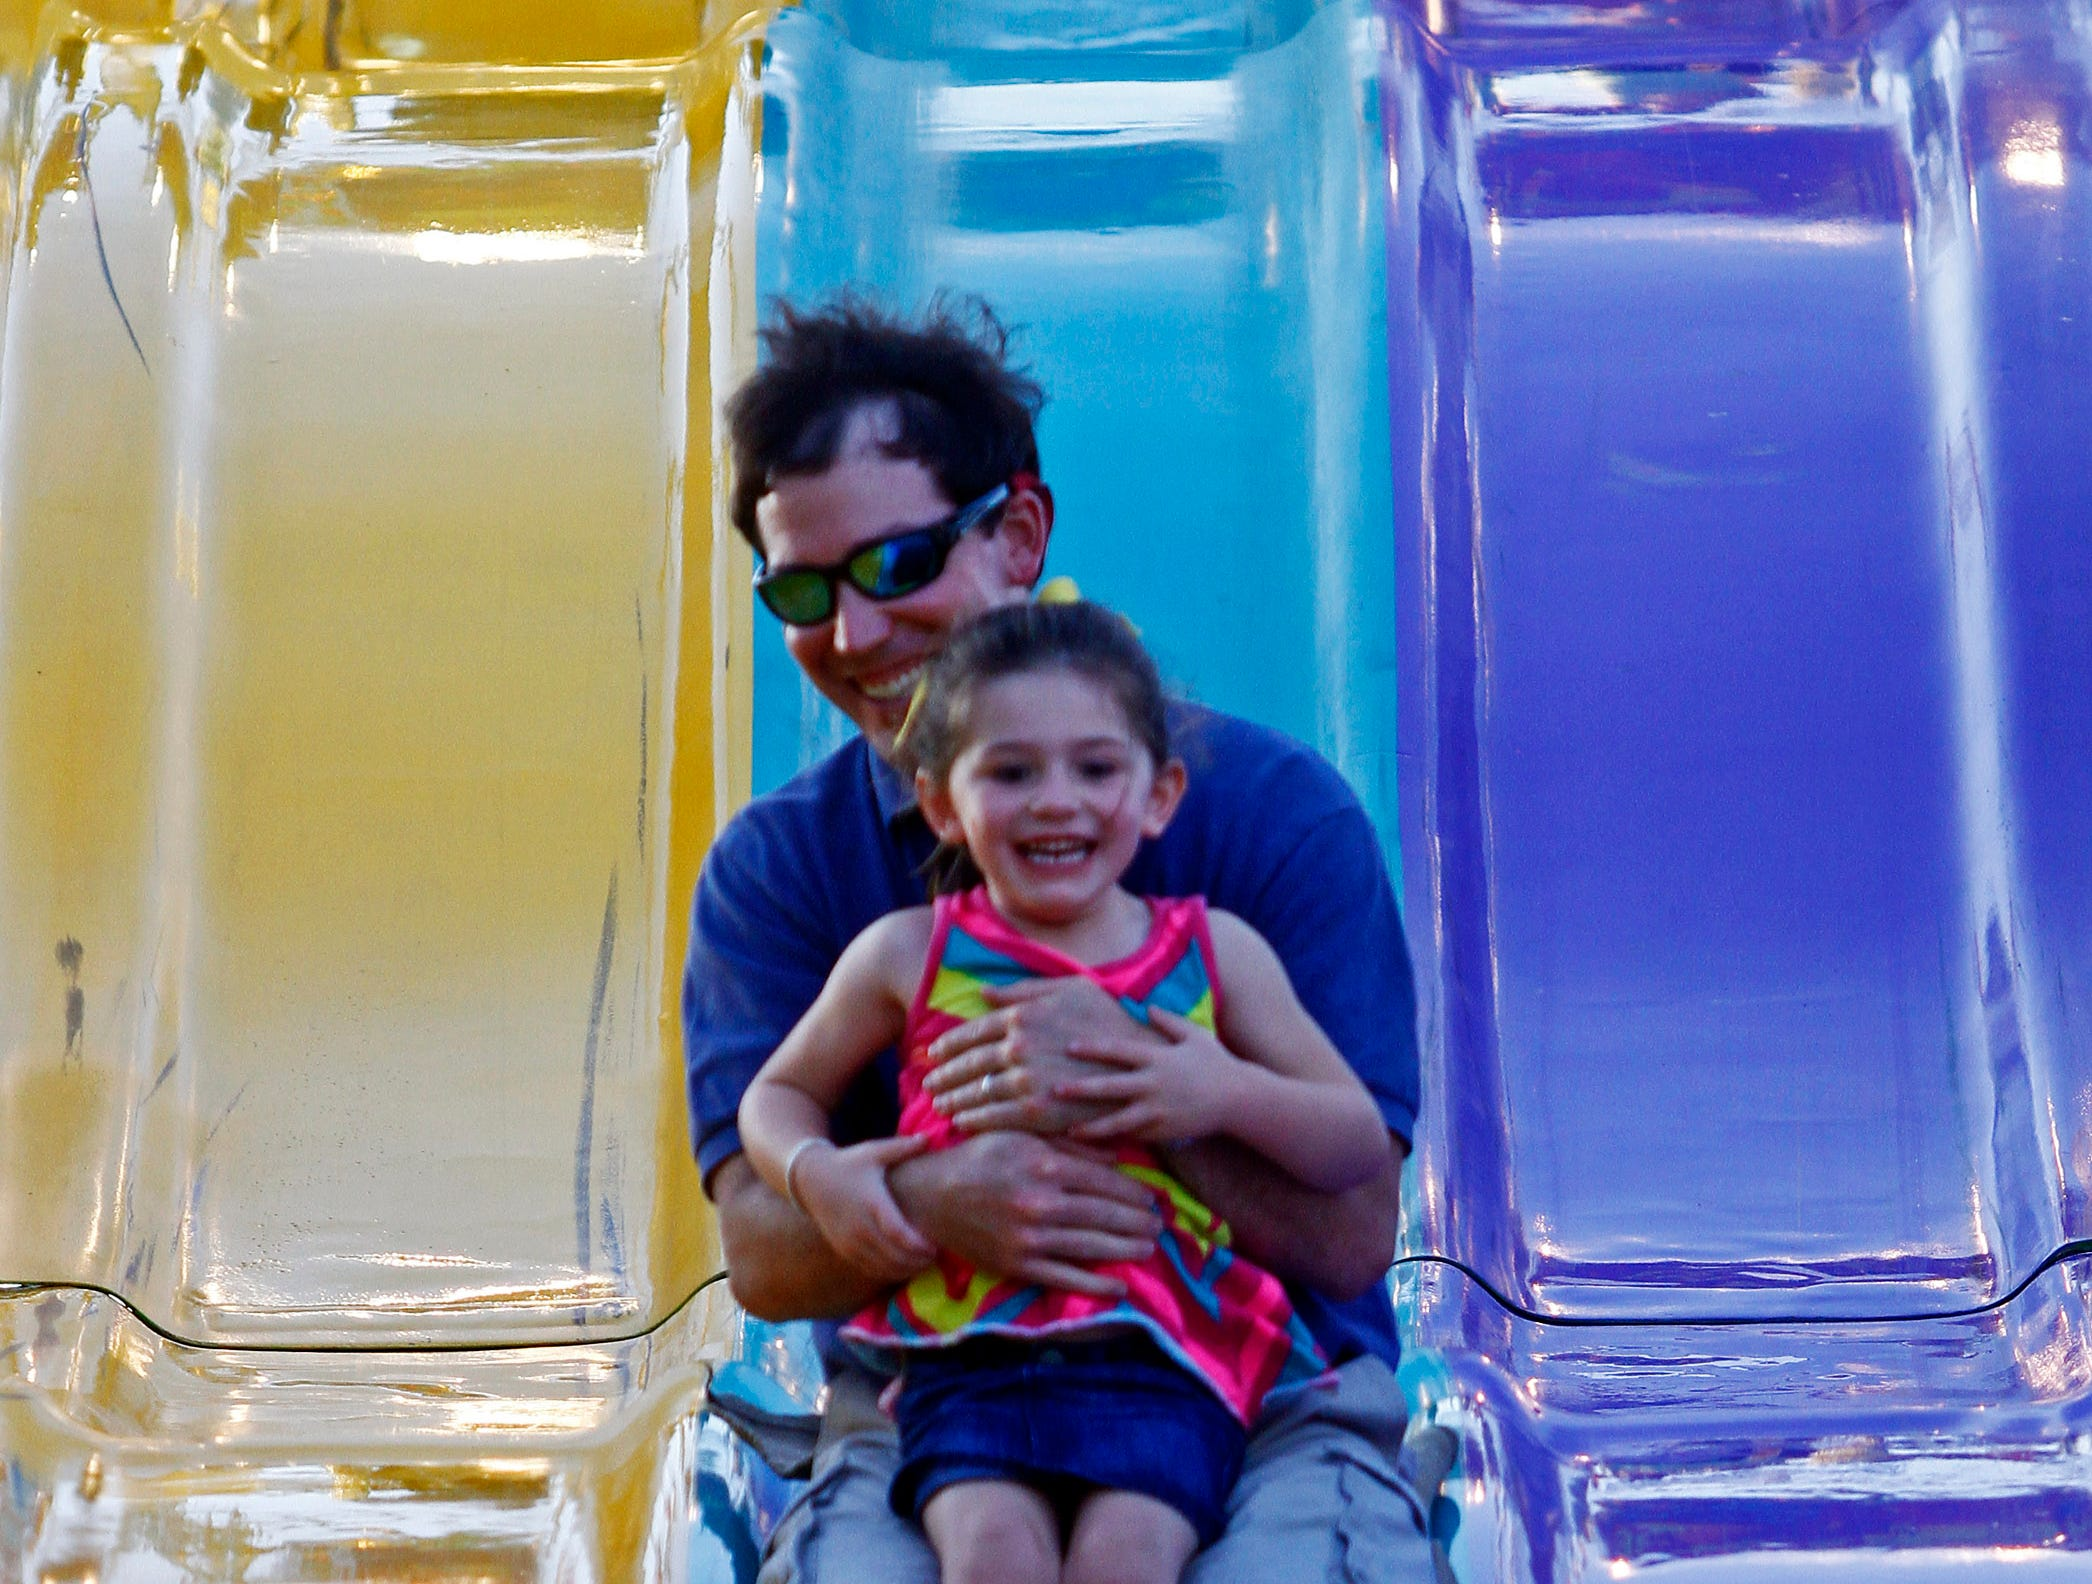 Scott Ellis goes down a slide with his 3-1/2 year-old daughter Mary Caroline during the first night of the annual Tennessee Valley Fair Friday, Sept. 7, 2012 in Knoxville, Tenn.